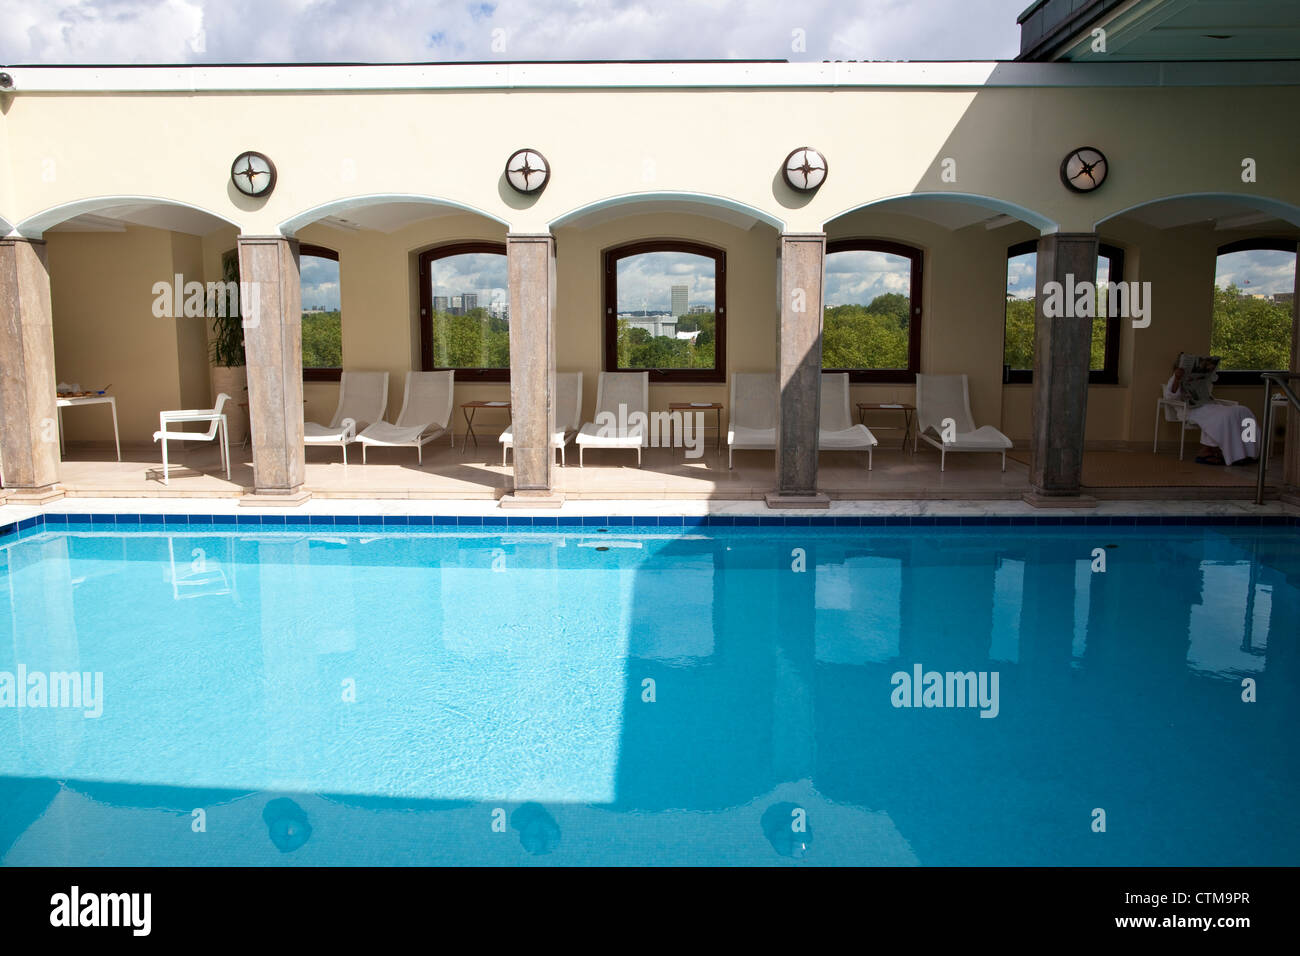 The Berkeley London rooftop pool, London, England, UK - Stock Image